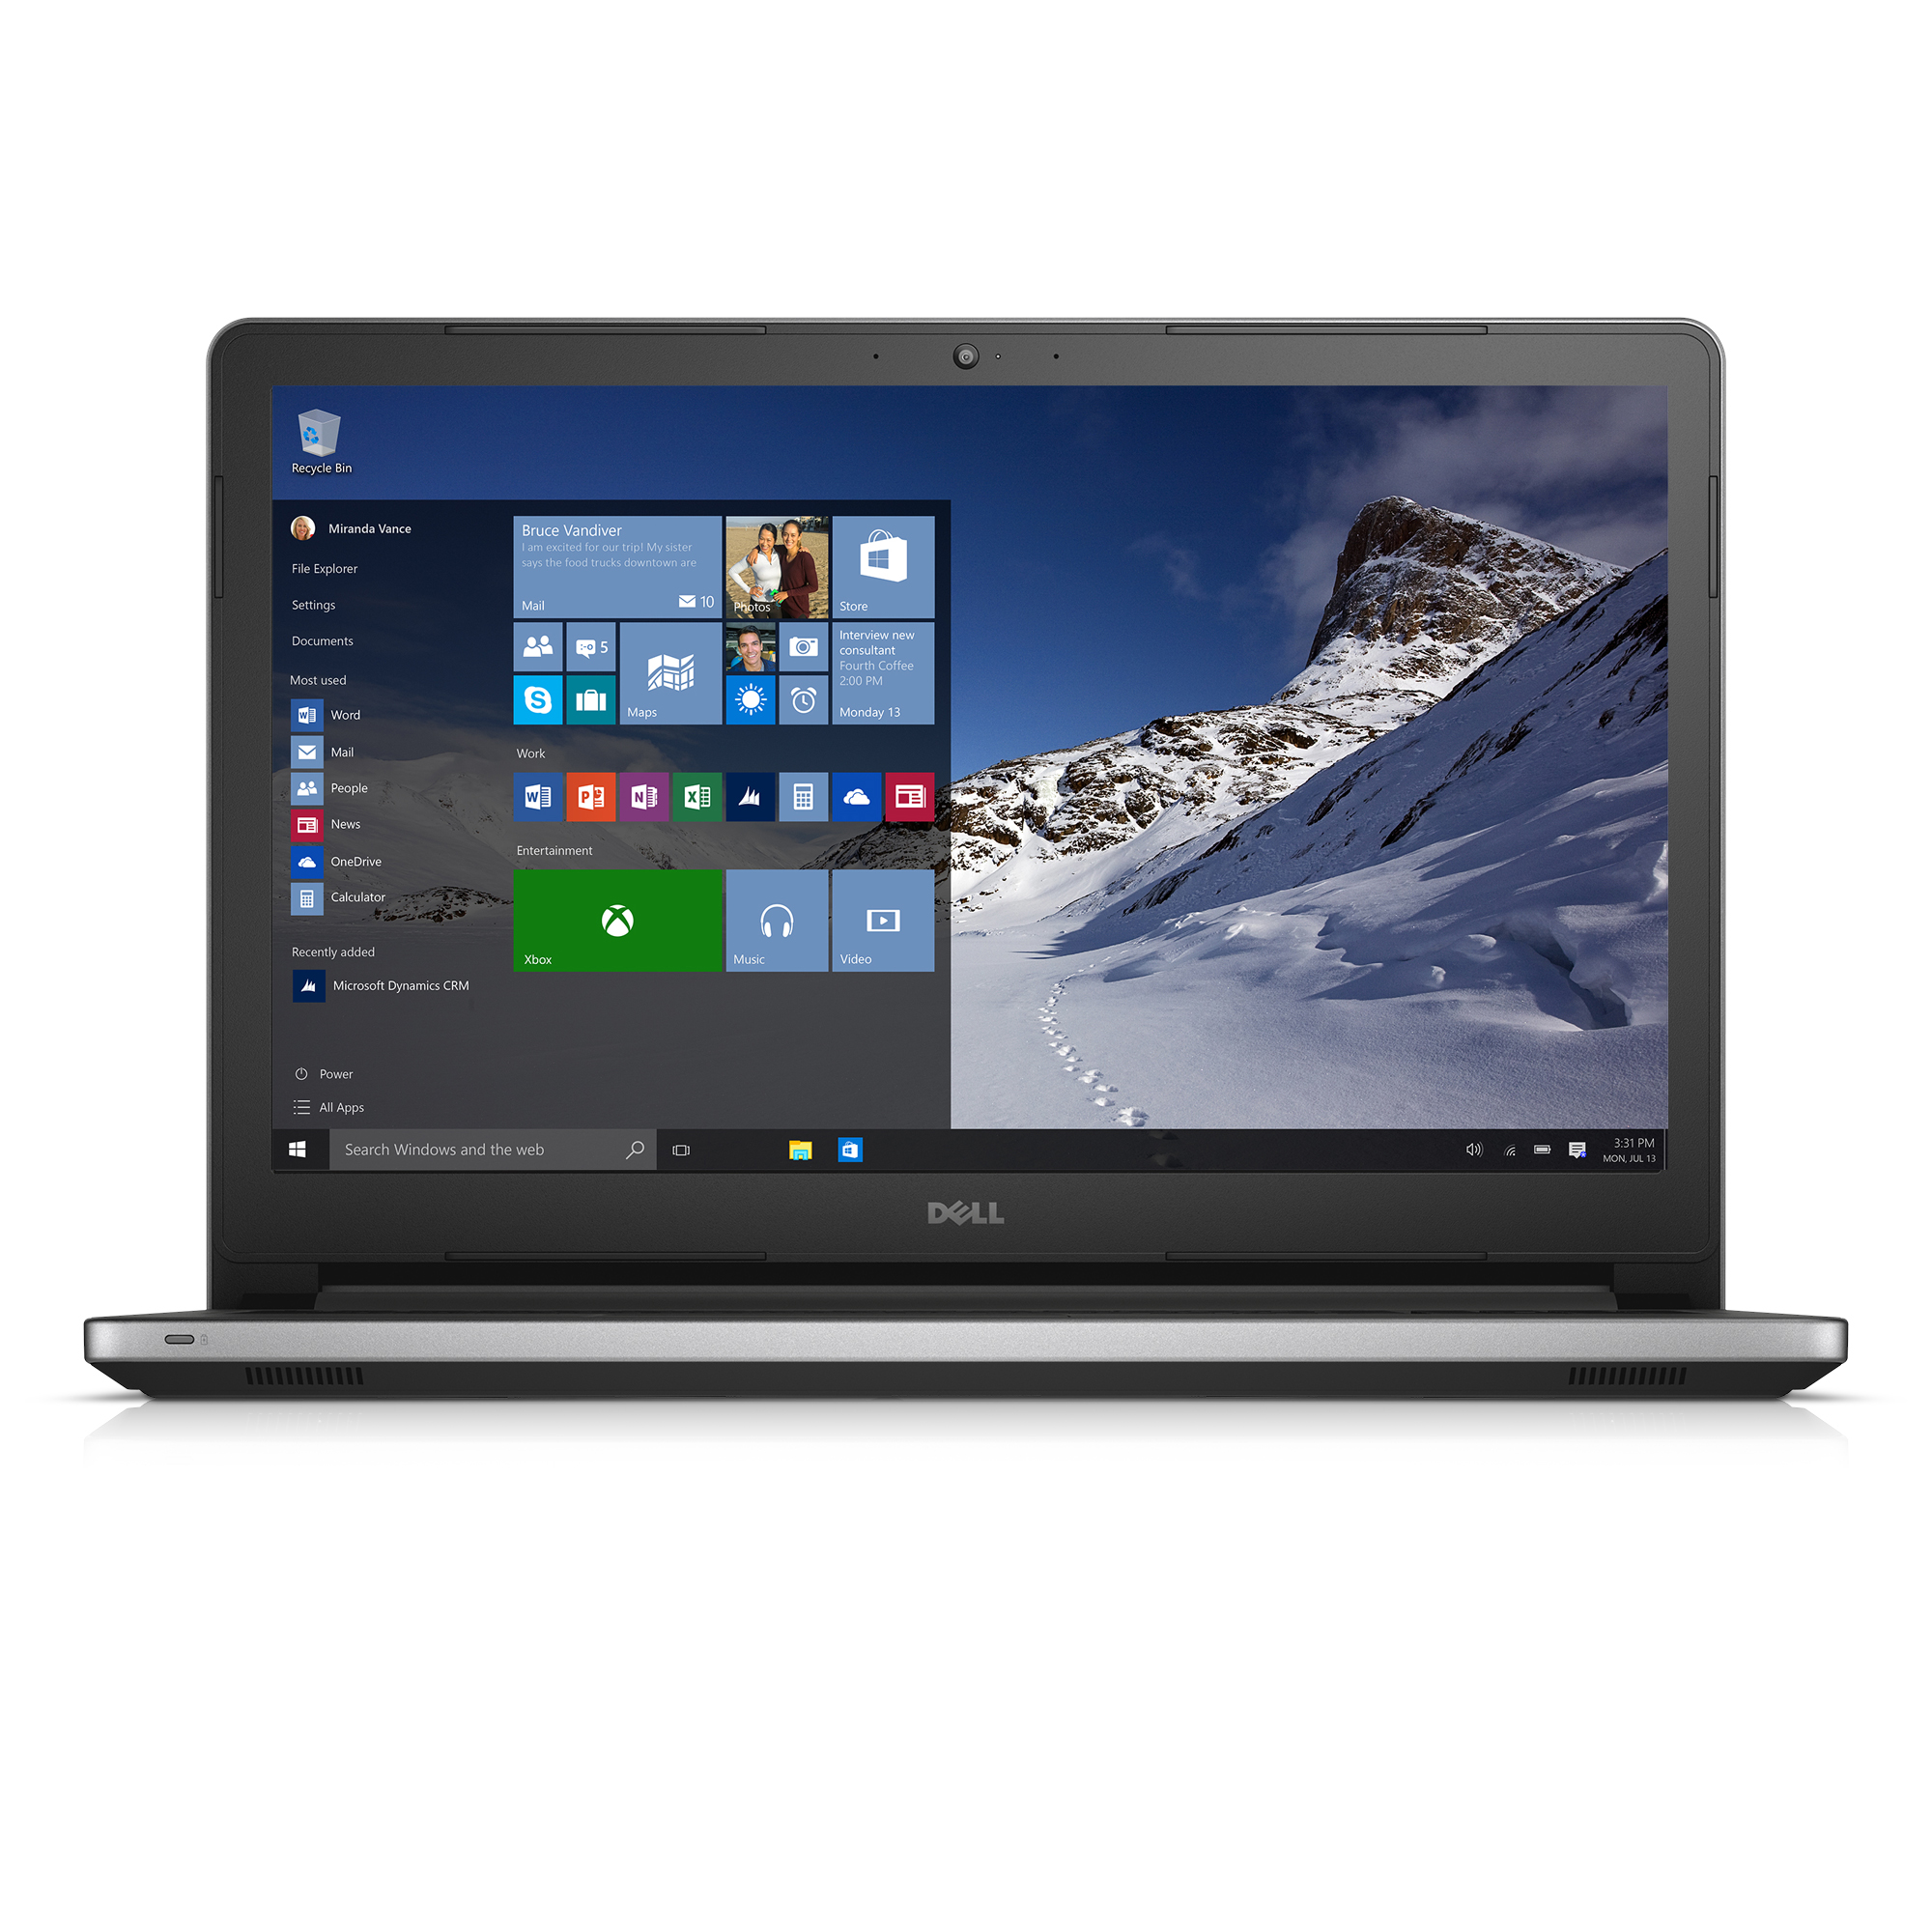 "Dell - Inspiron 15"" Laptop - AMD A10 - 12GB Memory- 1TB HD - Grey"